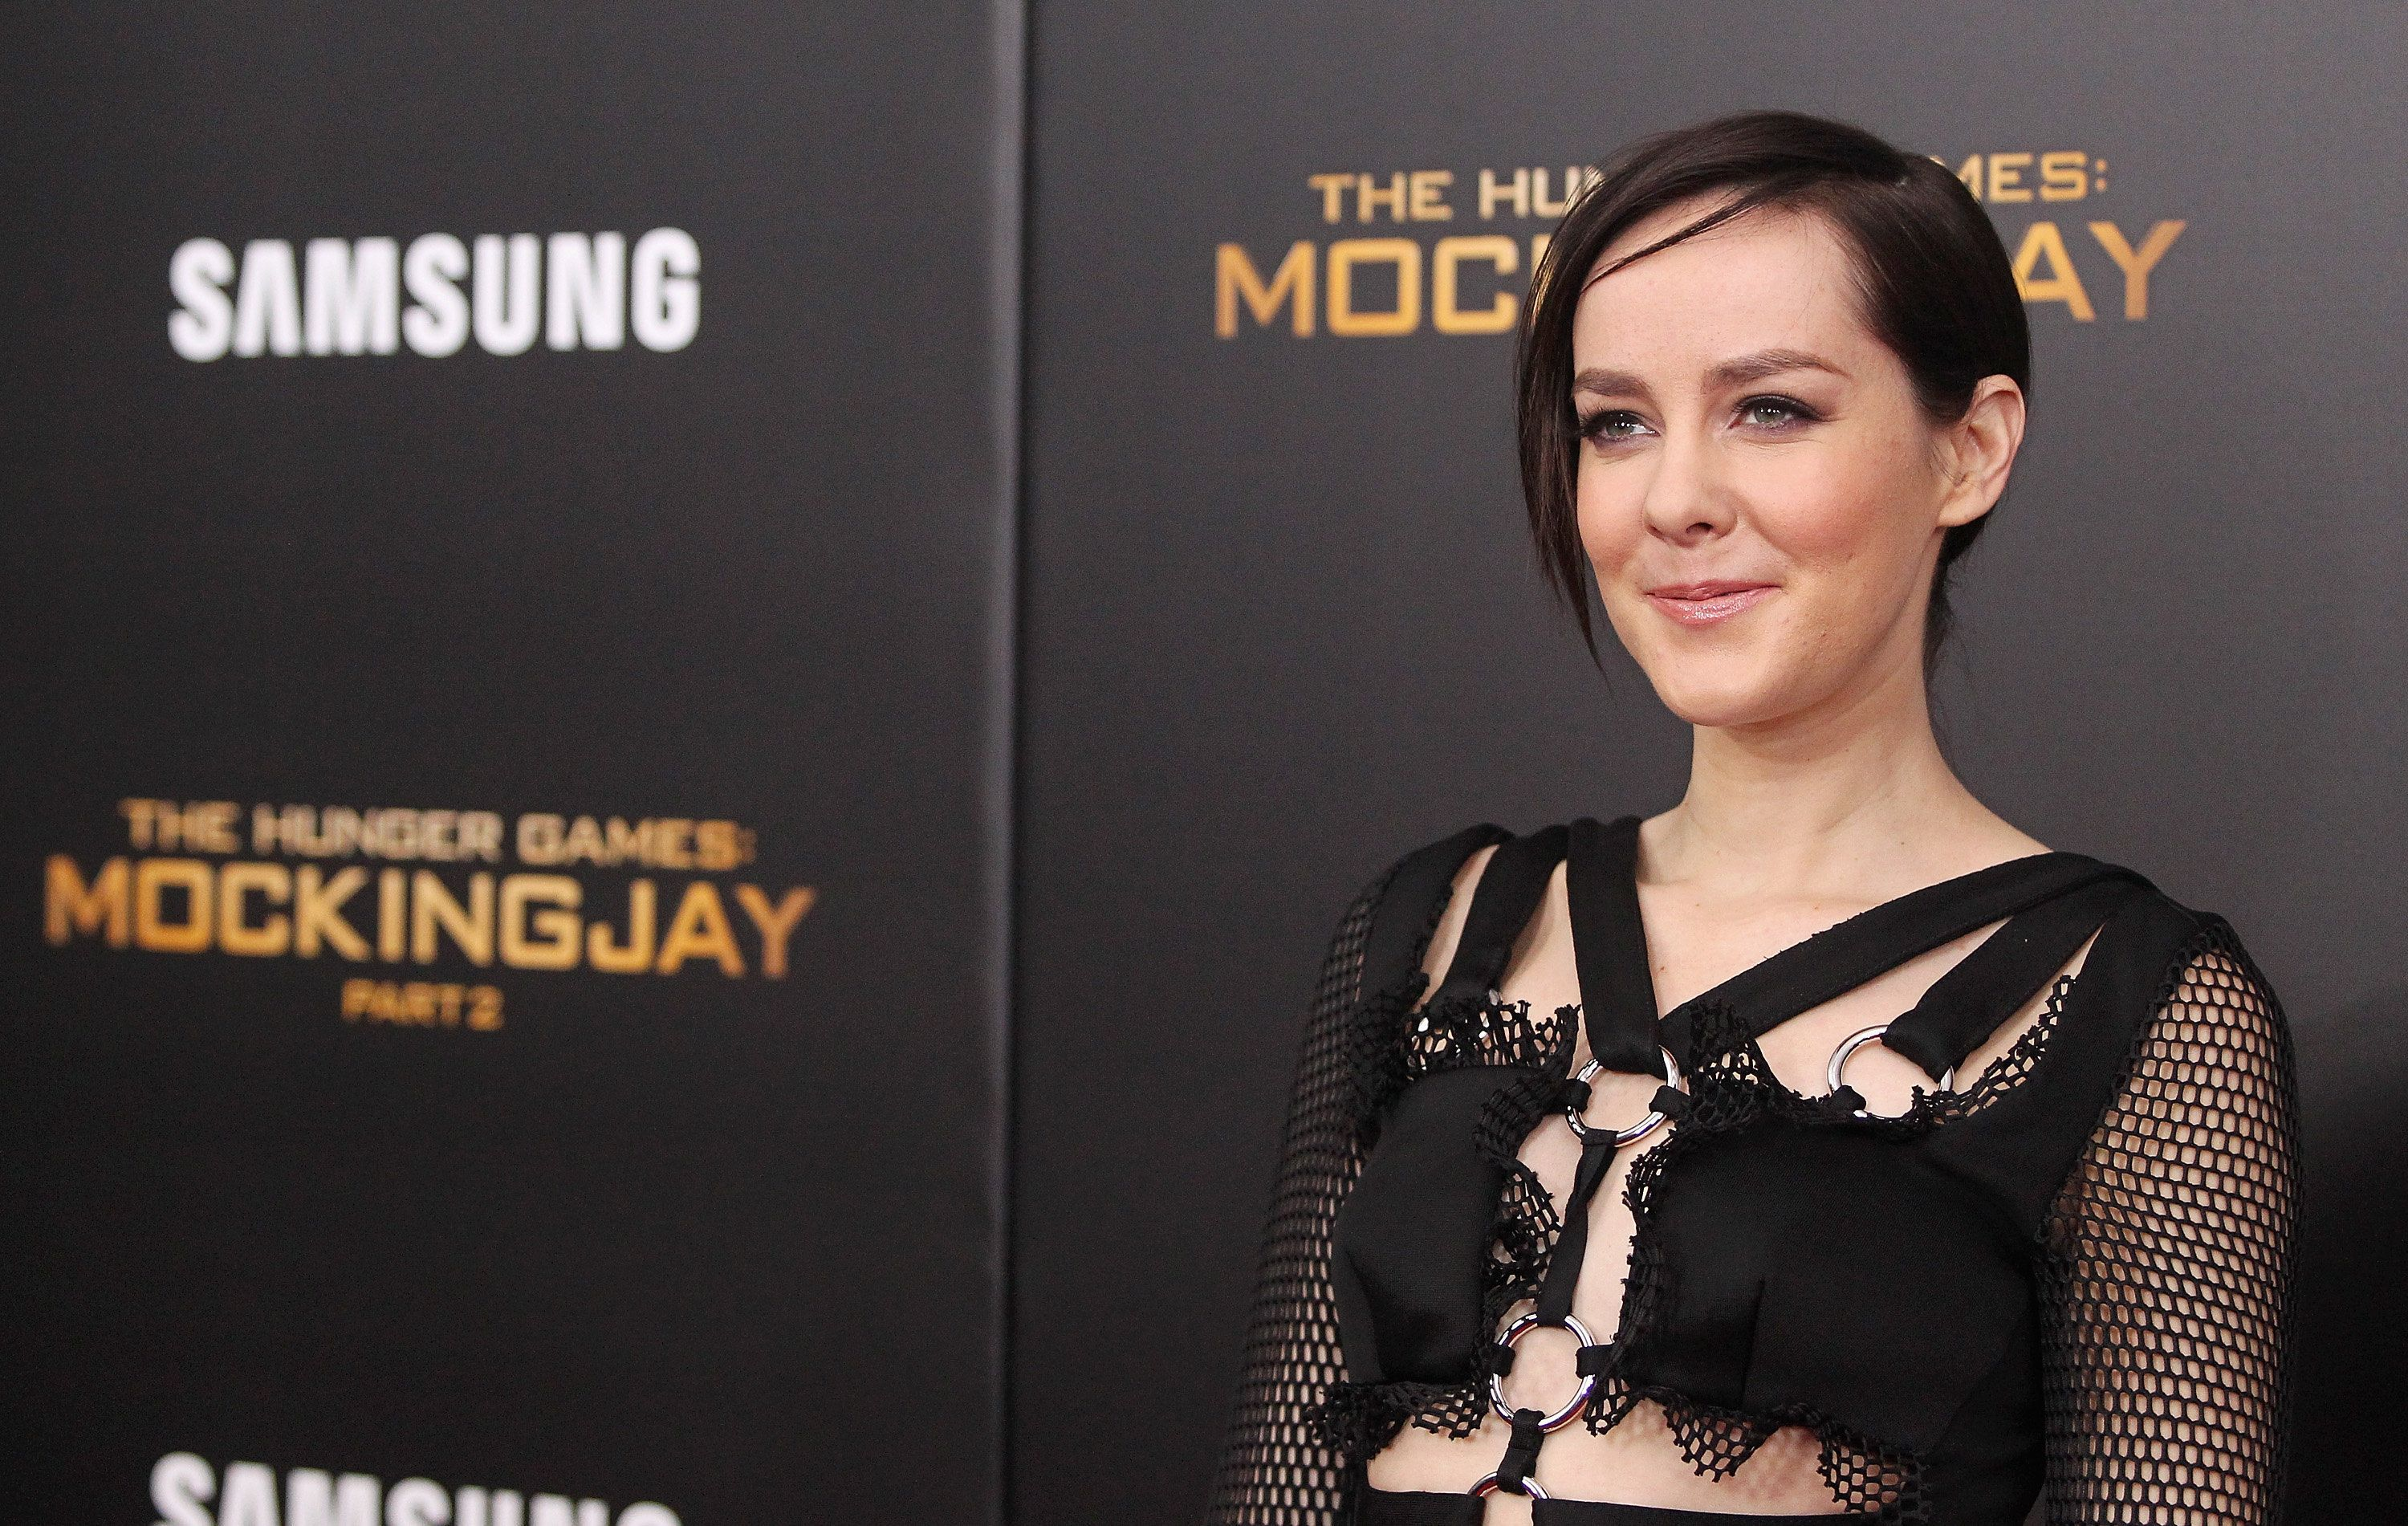 NEW YORK, NY - NOVEMBER 18:  Actress Jena Malone attends the 'The Hunger Games: Mockingjay- Part 2' New York premiere at AMC Loews Lincoln Square 13 theater on November 18, 2015 in New York City.  (Photo by Jim Spellman/WireImage)